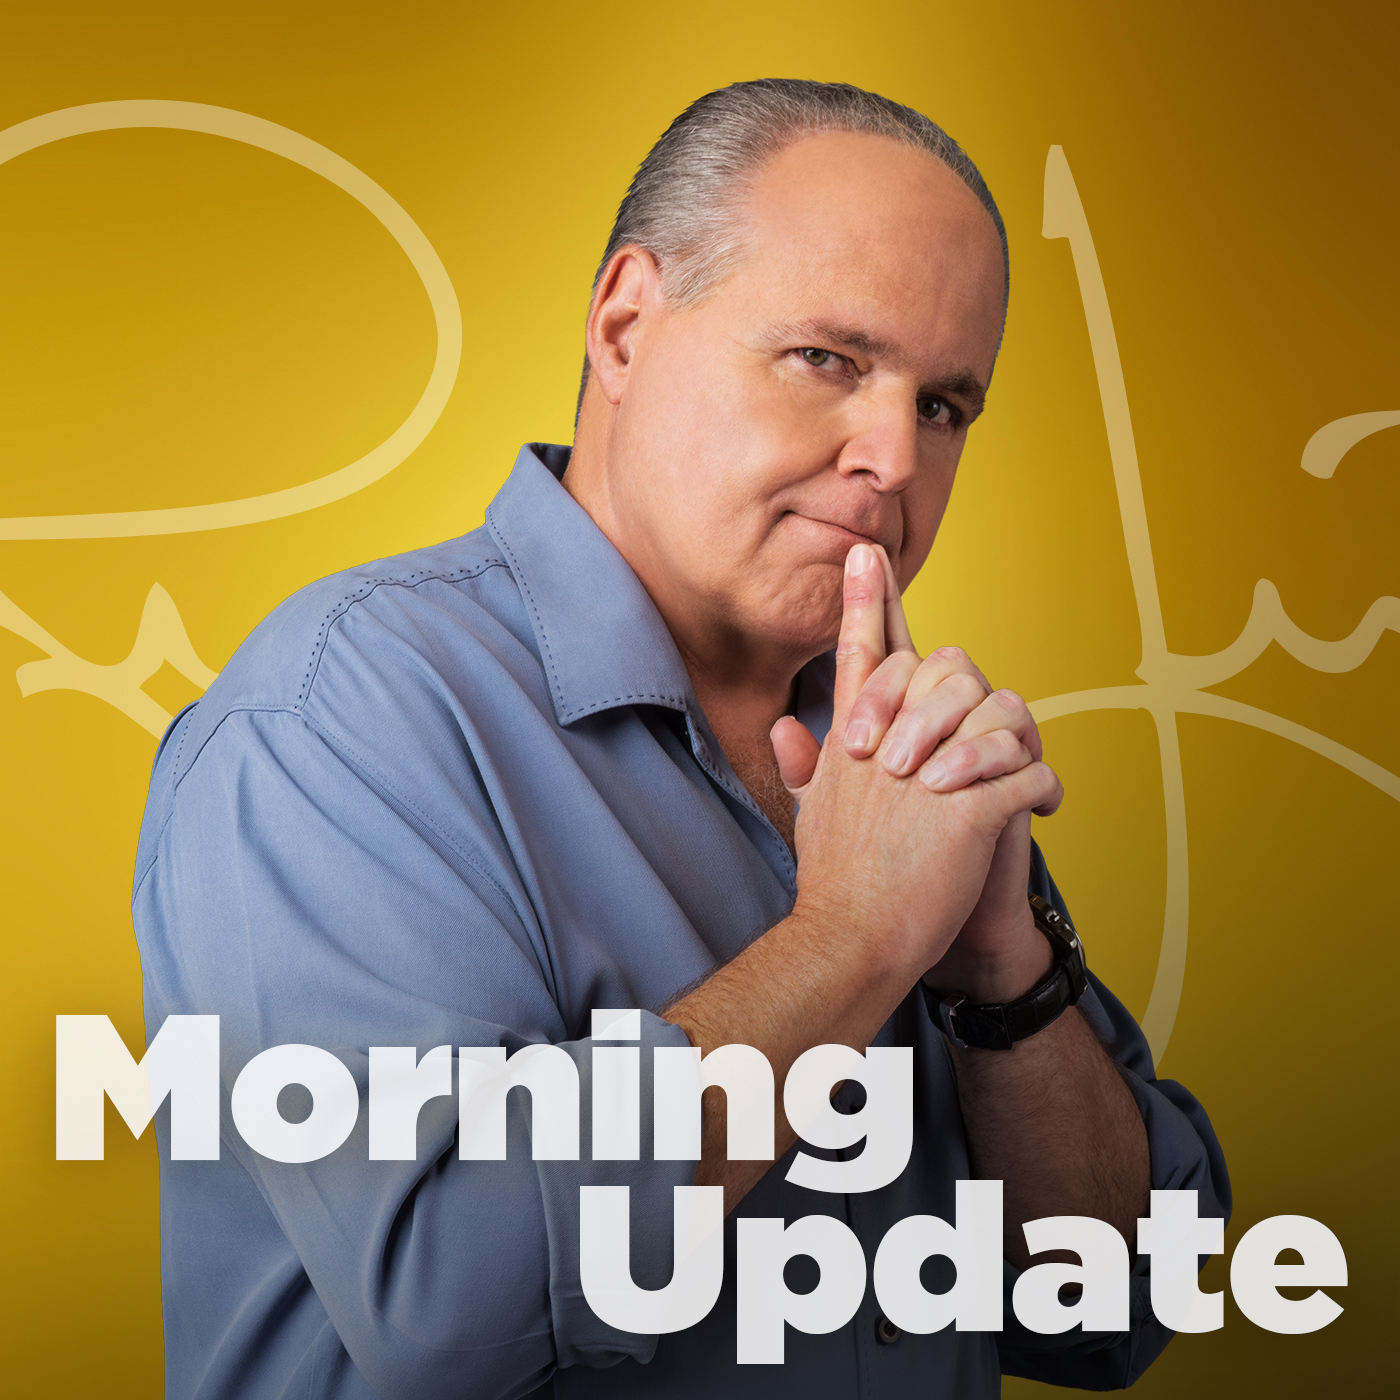 Rush Limbaugh Dec 23, 2019